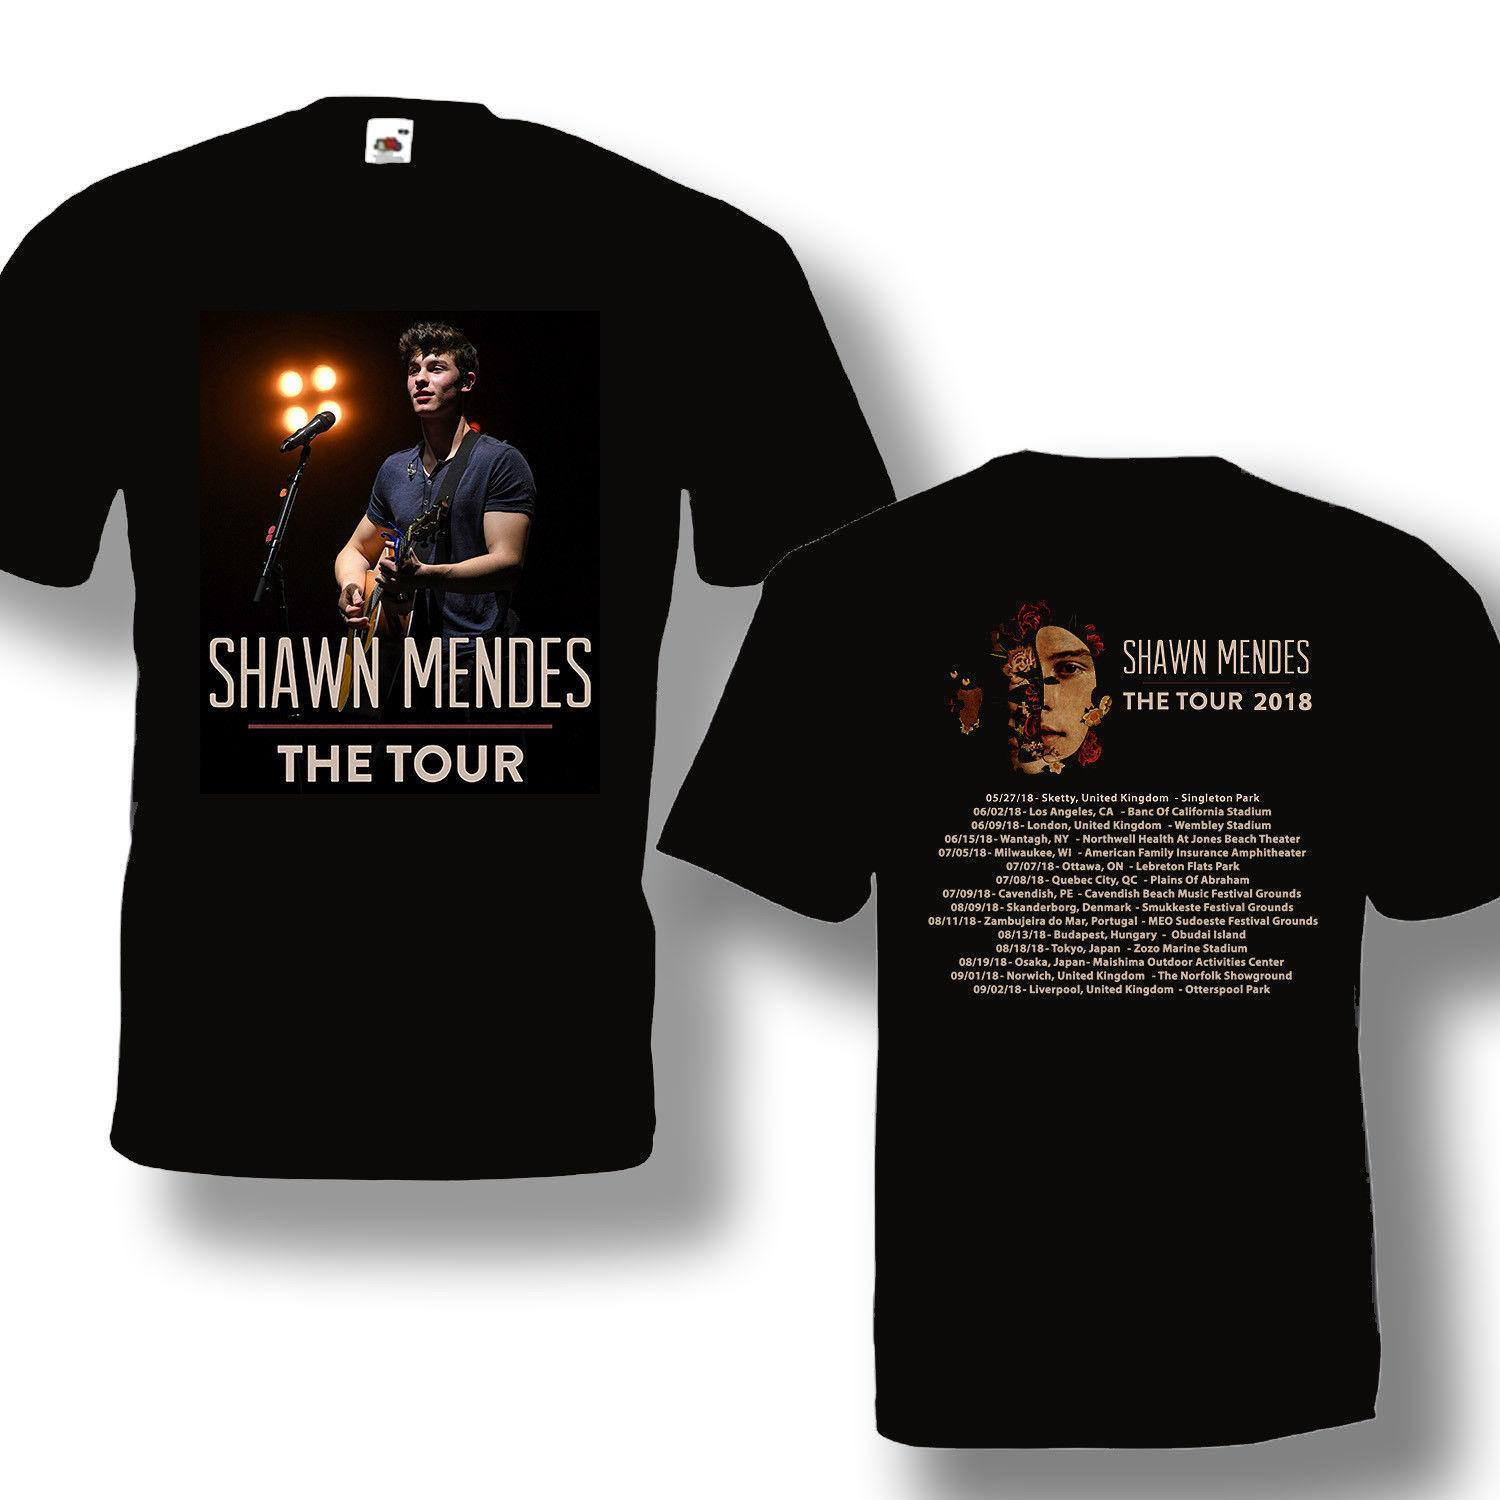 edde7c06 17 Shawn Mendes Tour 2018 Tshirt With Tour Date Black T Shirt Size S To 5XL  2018 New Tee Print Men T Shirt Tops The Who T Shirts Online Tshirt Shopping  From ...